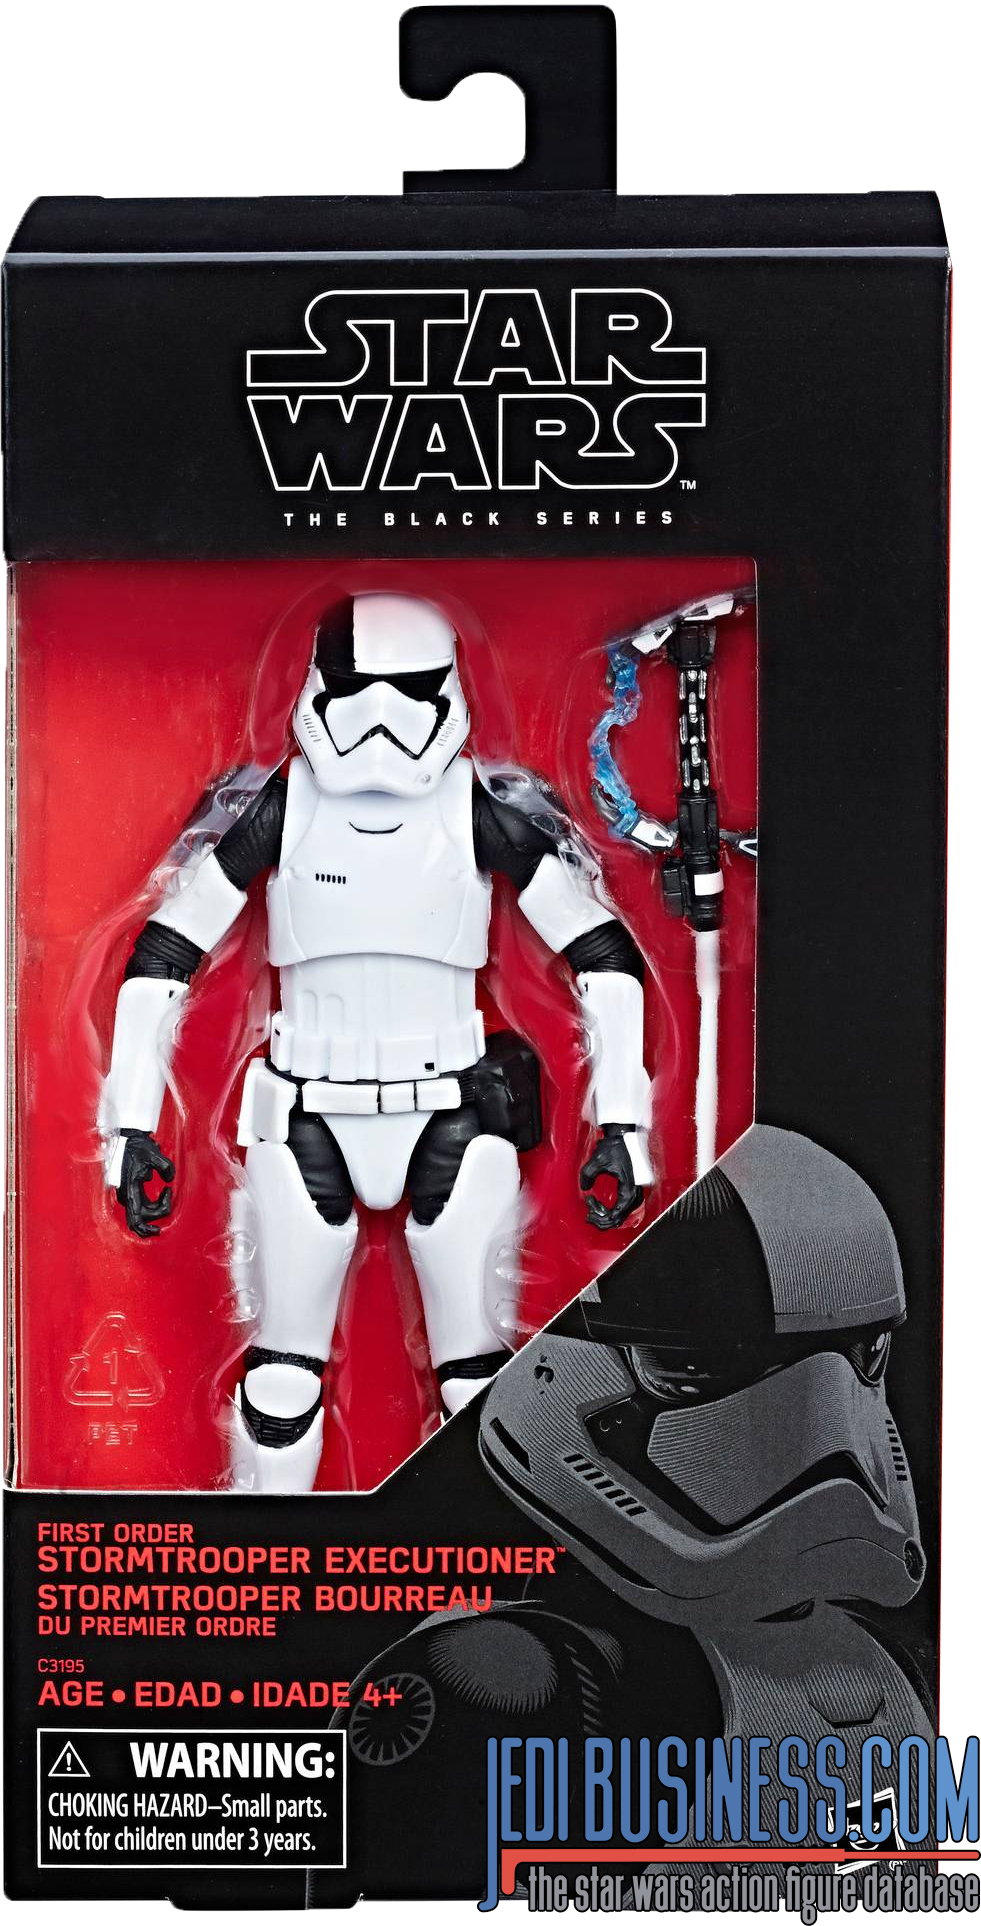 Stormtrooper Executioner, The First Order